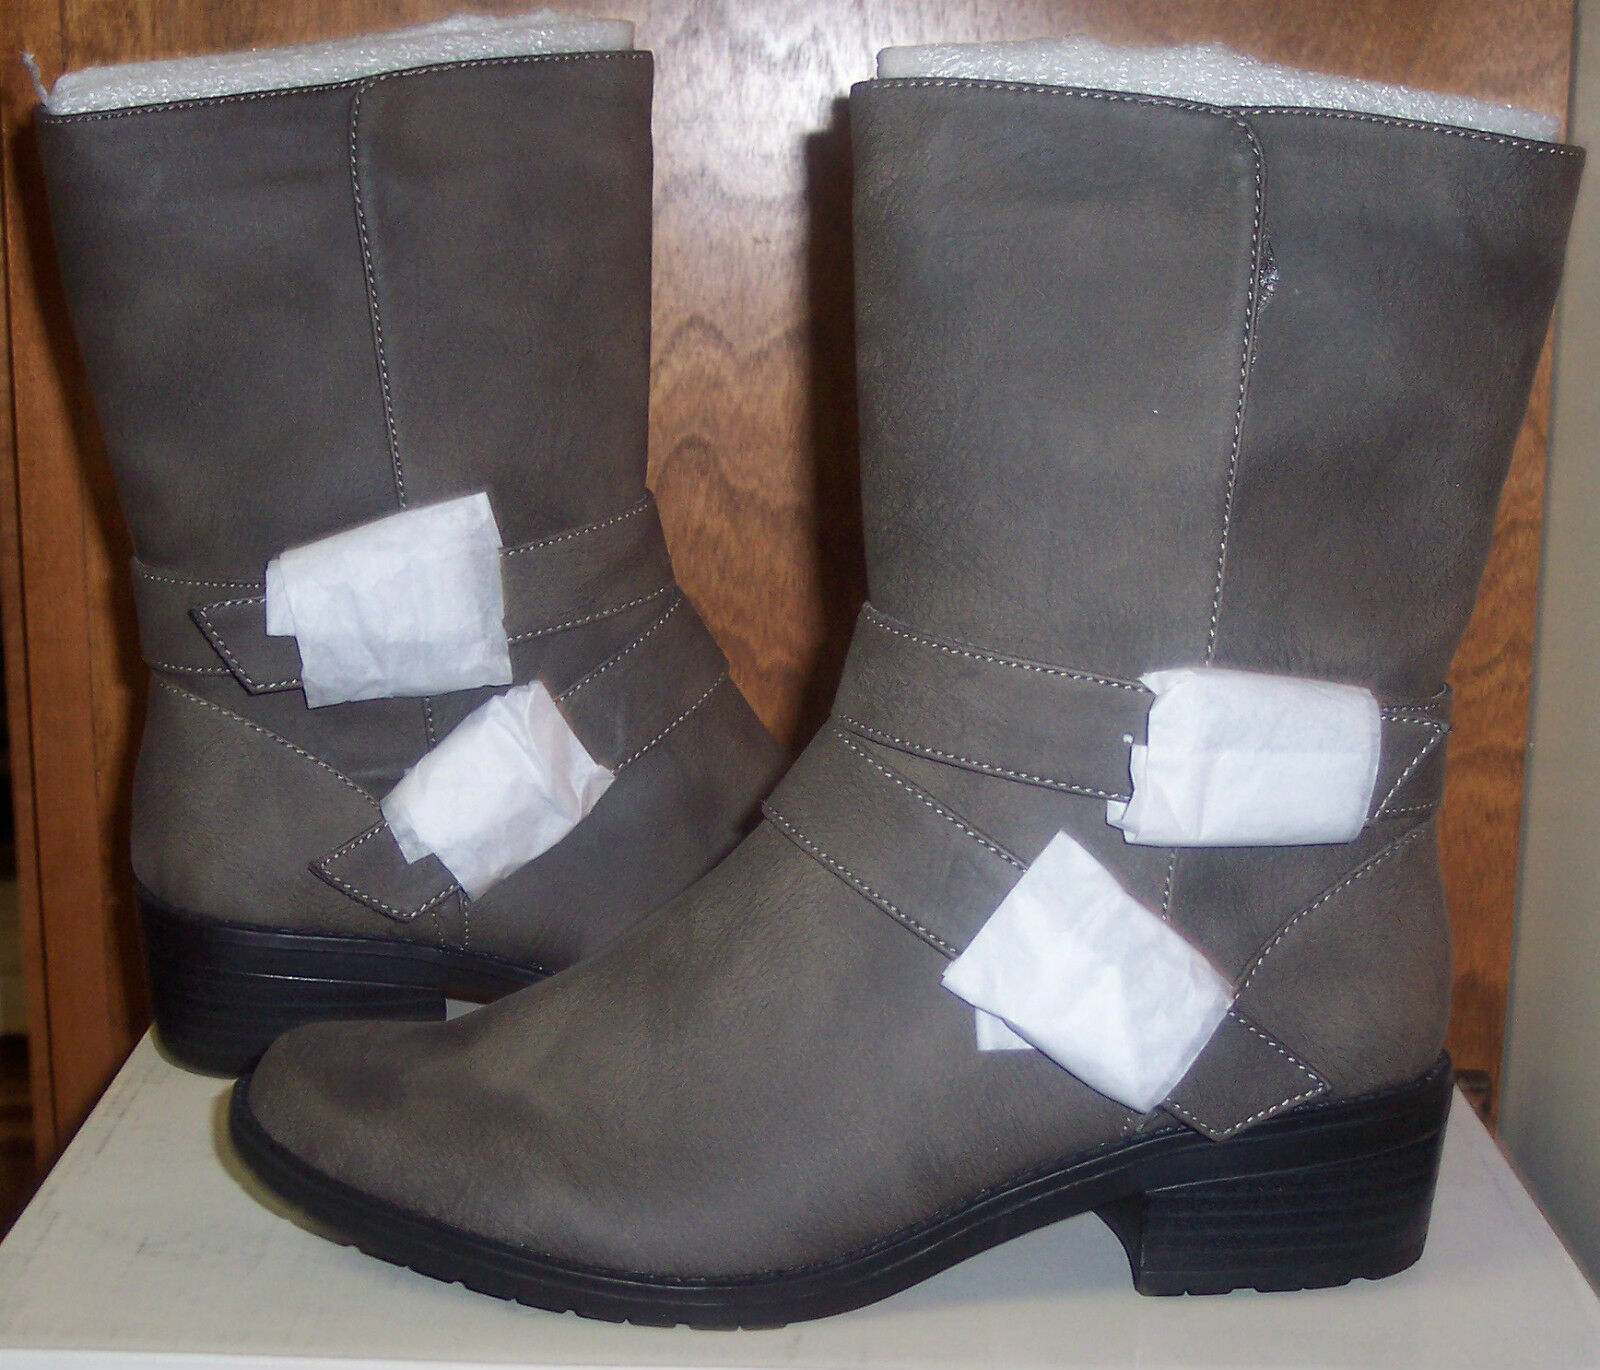 Anne Klein Lavinia Womens DK Taupe Belted Strap Side Zip Casual Boot Sz 6M NIB